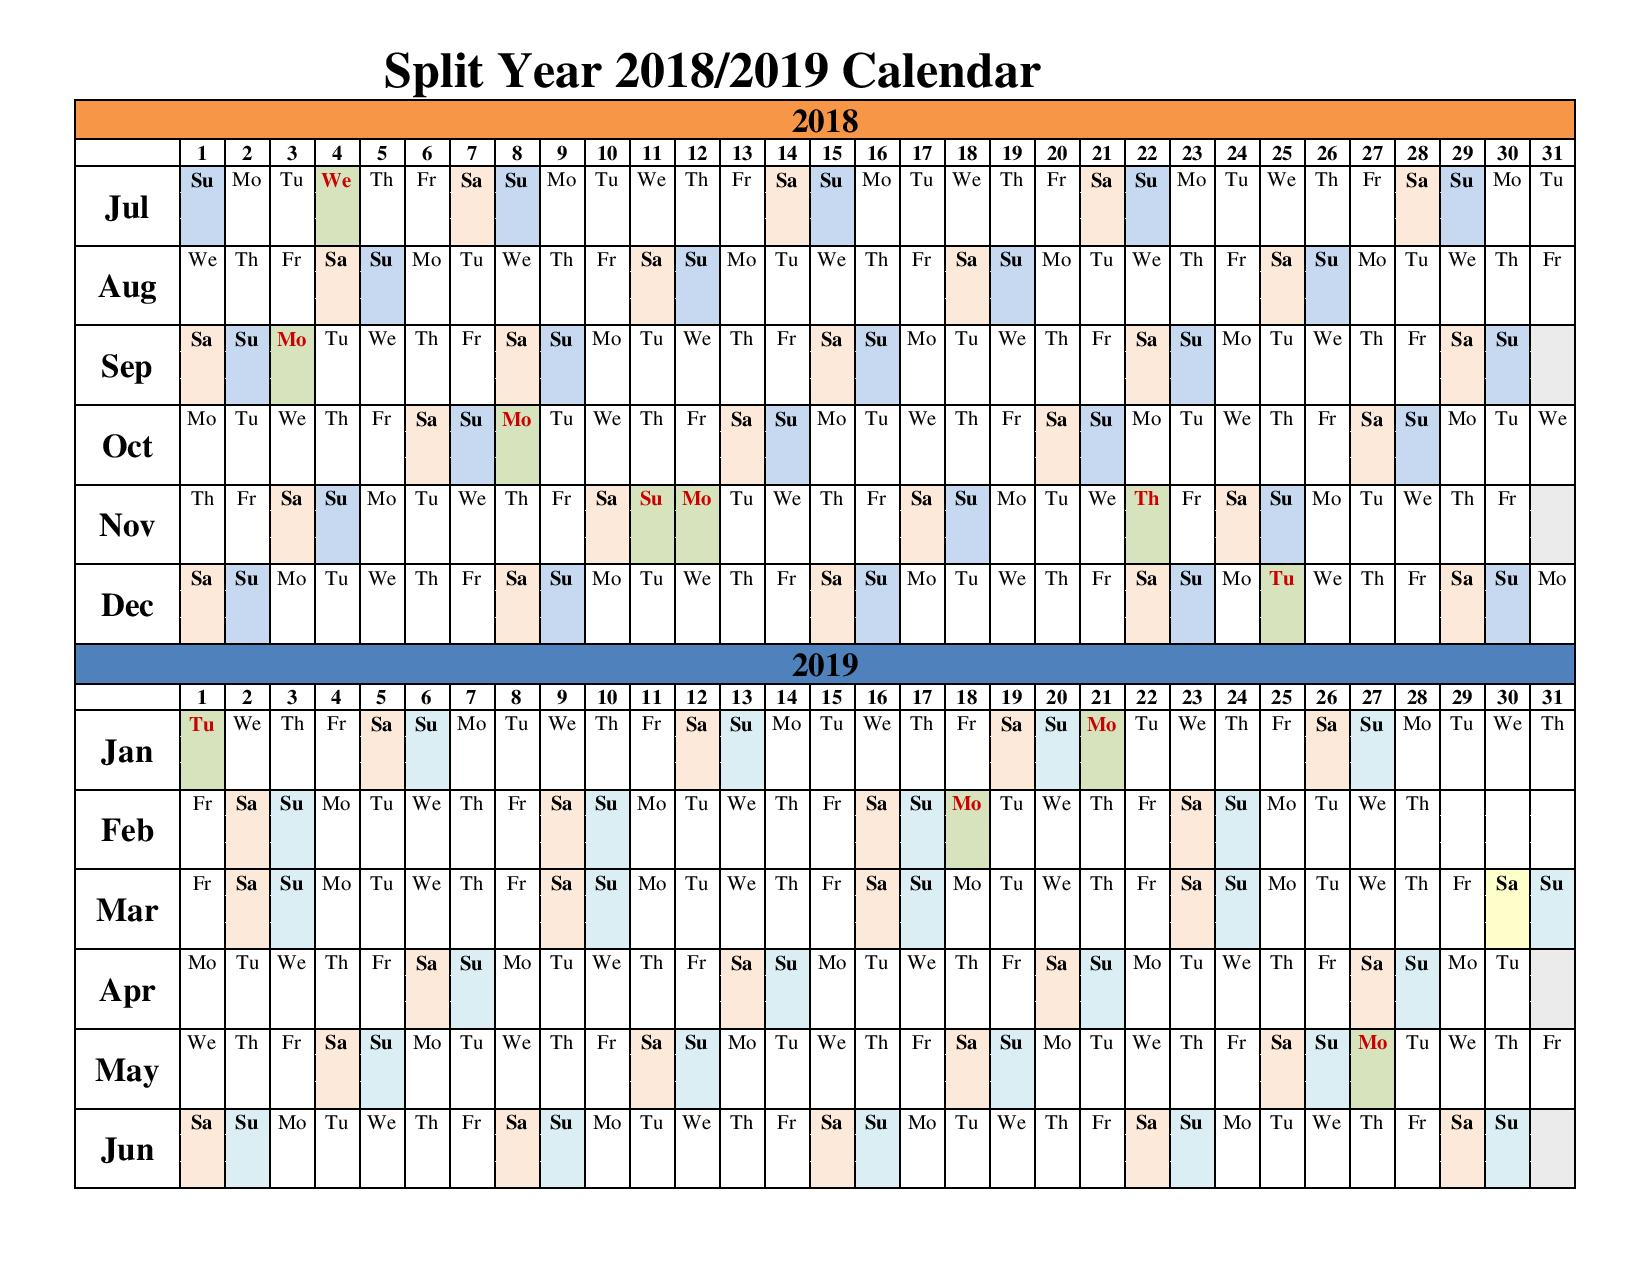 Fiscal Year Calendar 2019 Quarters With 2018 Split Calendars Blank Templates Office